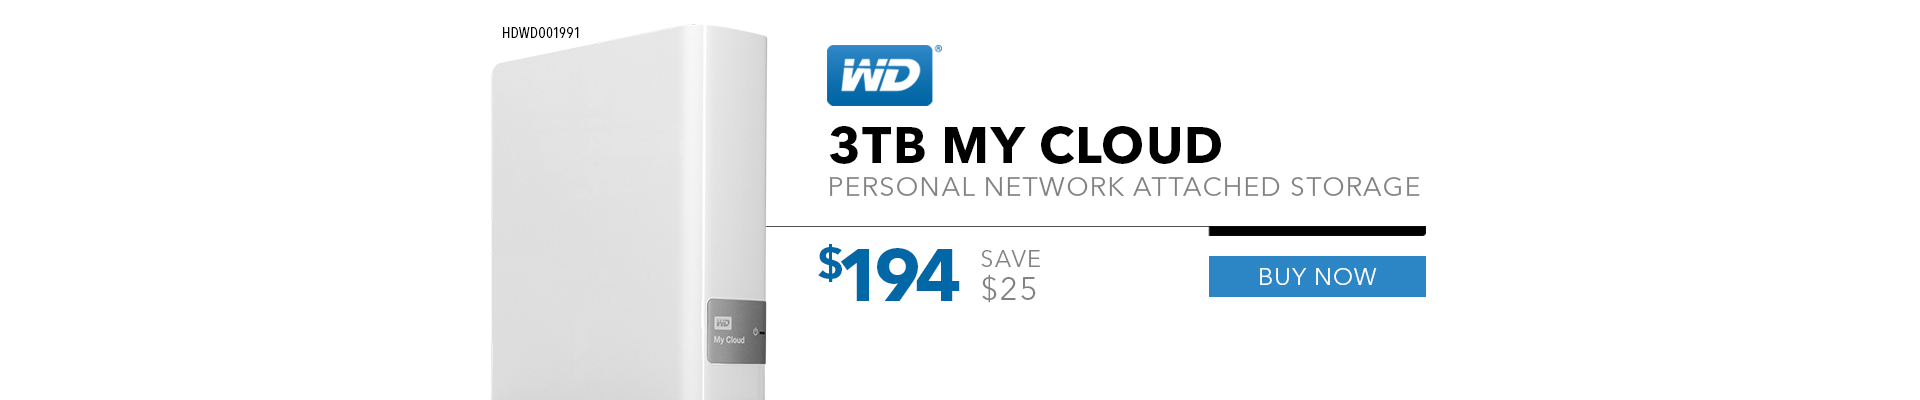 Western Digital My Cloud LP